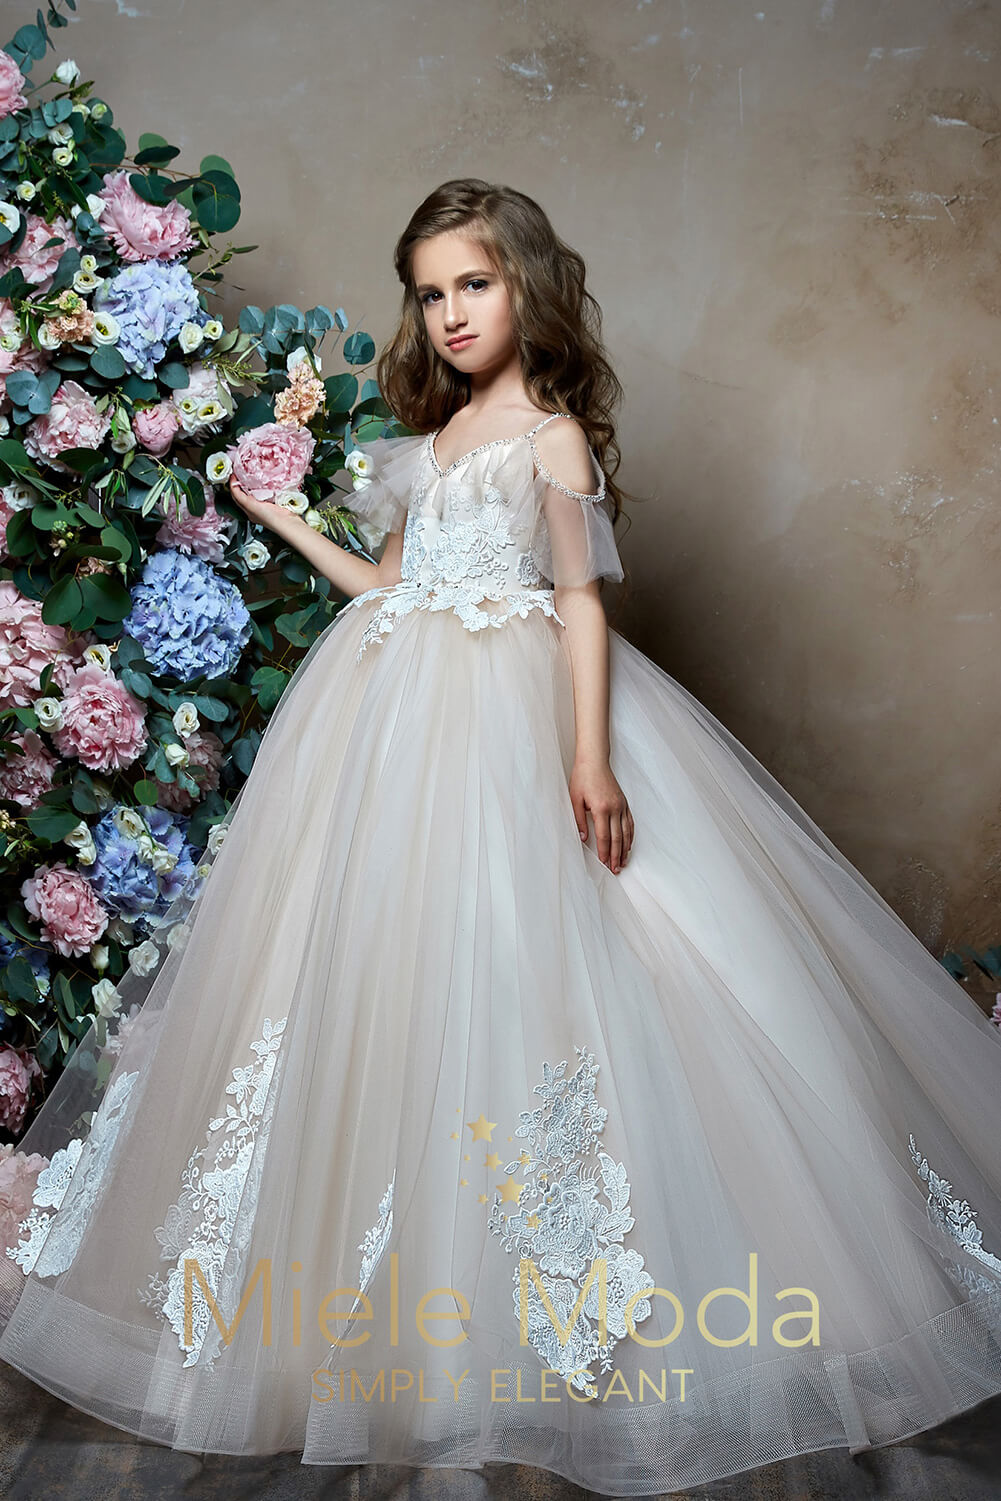 Athena Flower Girl Dress Pageant Dress-Flower Girl Dress-Miele Moda